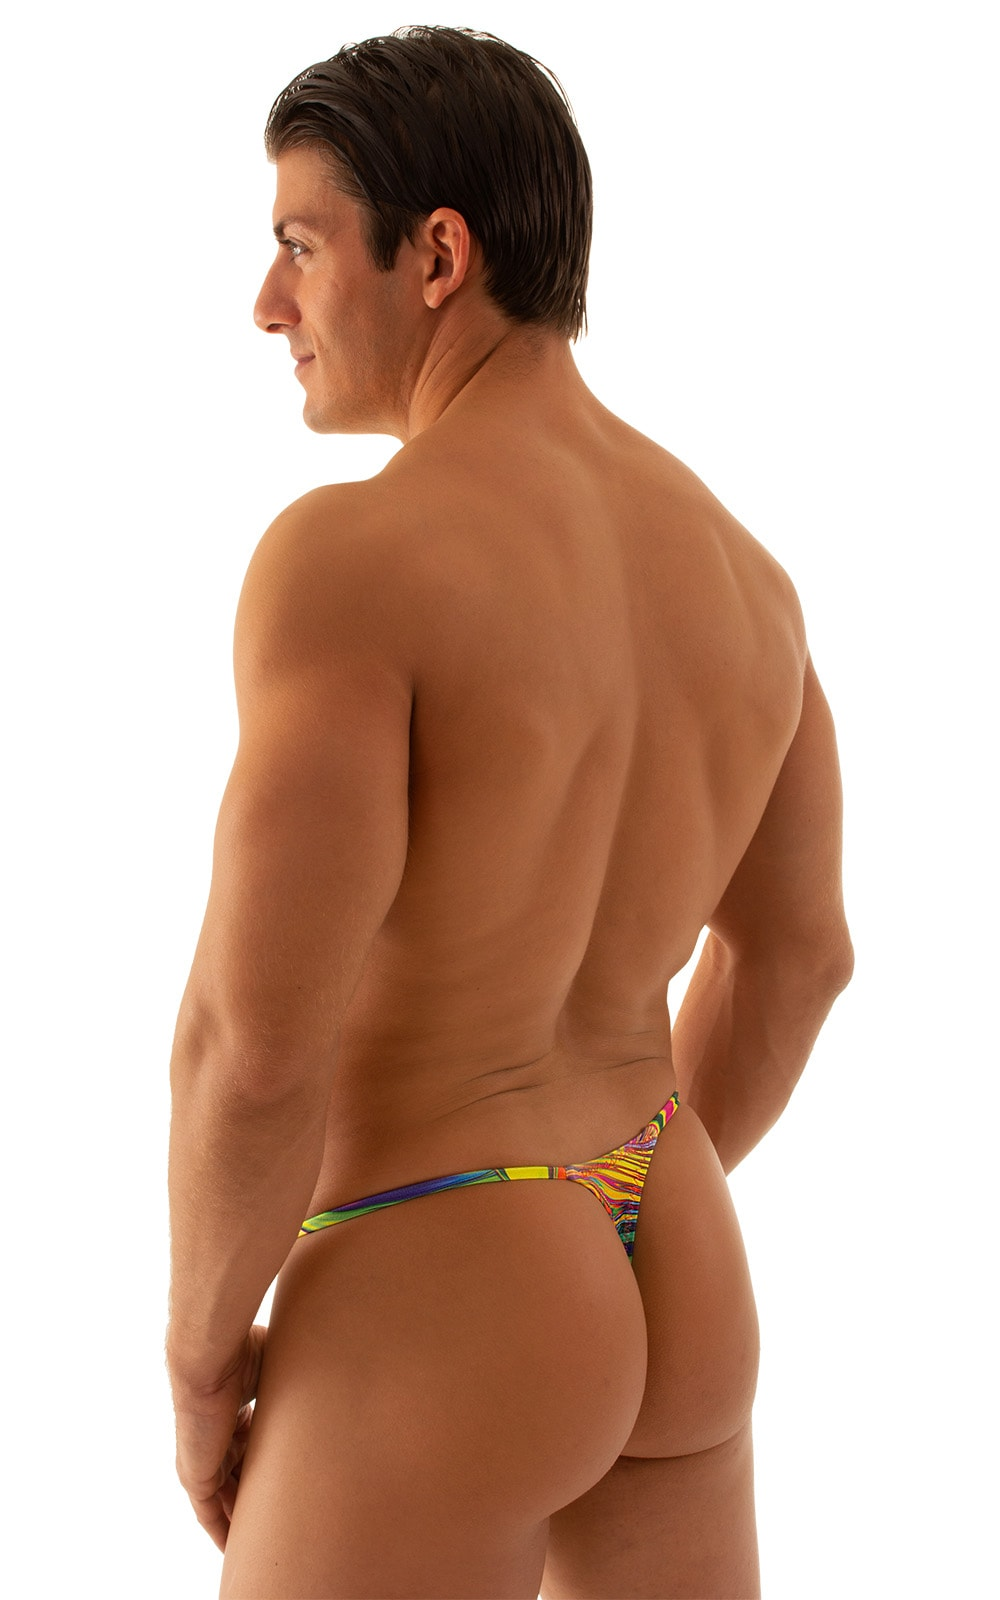 Smooth Pouch Skinny Sides Swim Thong in Neon Dali 2